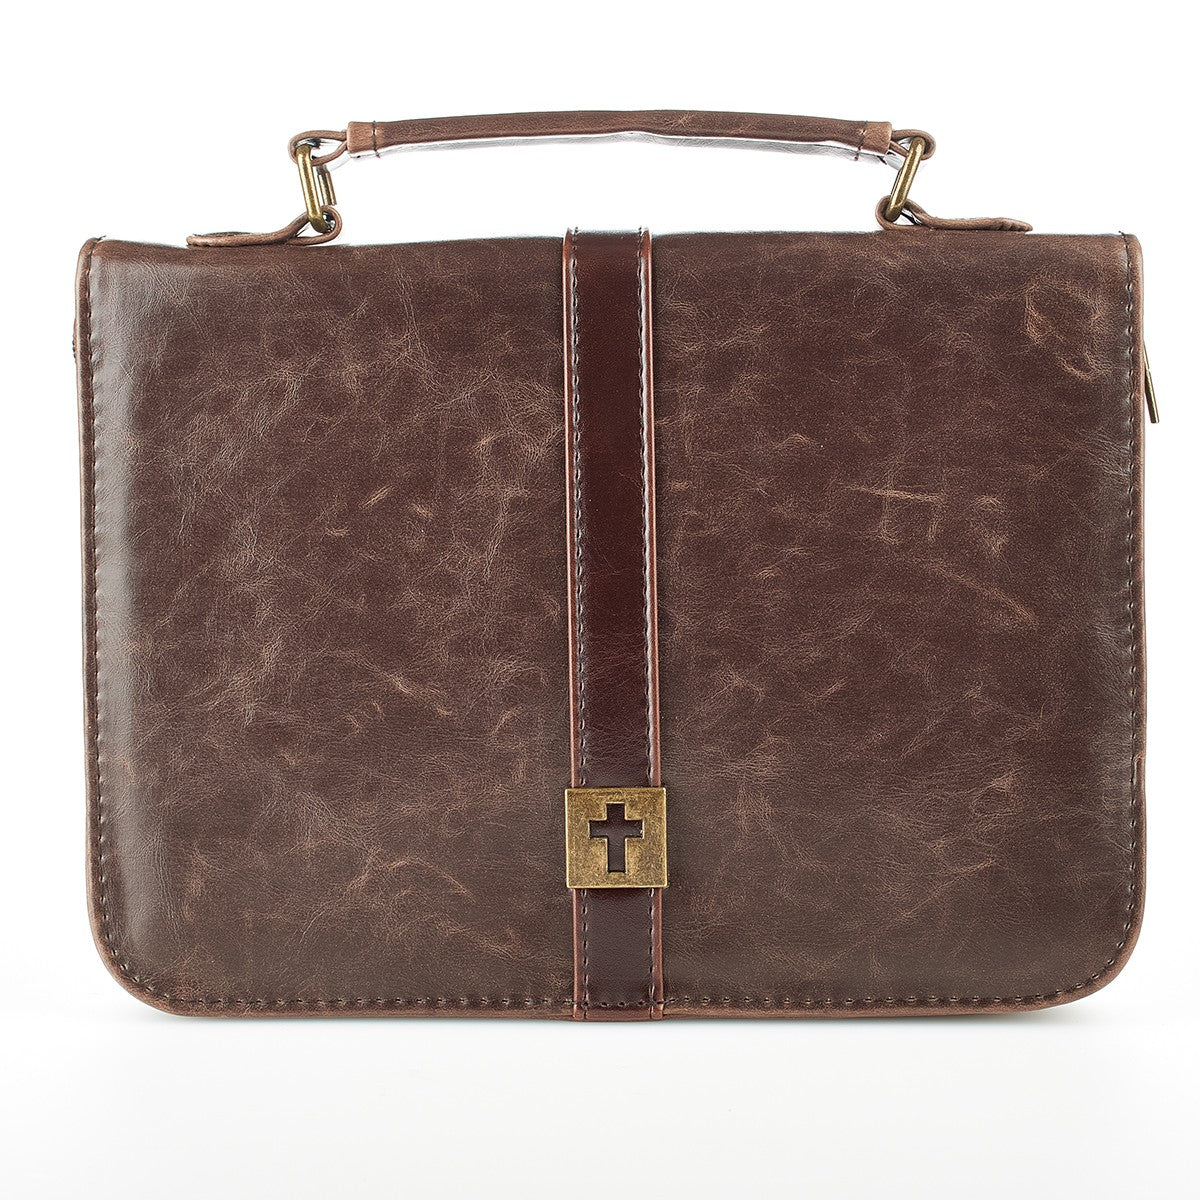 Brown Distressed Faux Leather Classic Bible Cover with Cross Badge